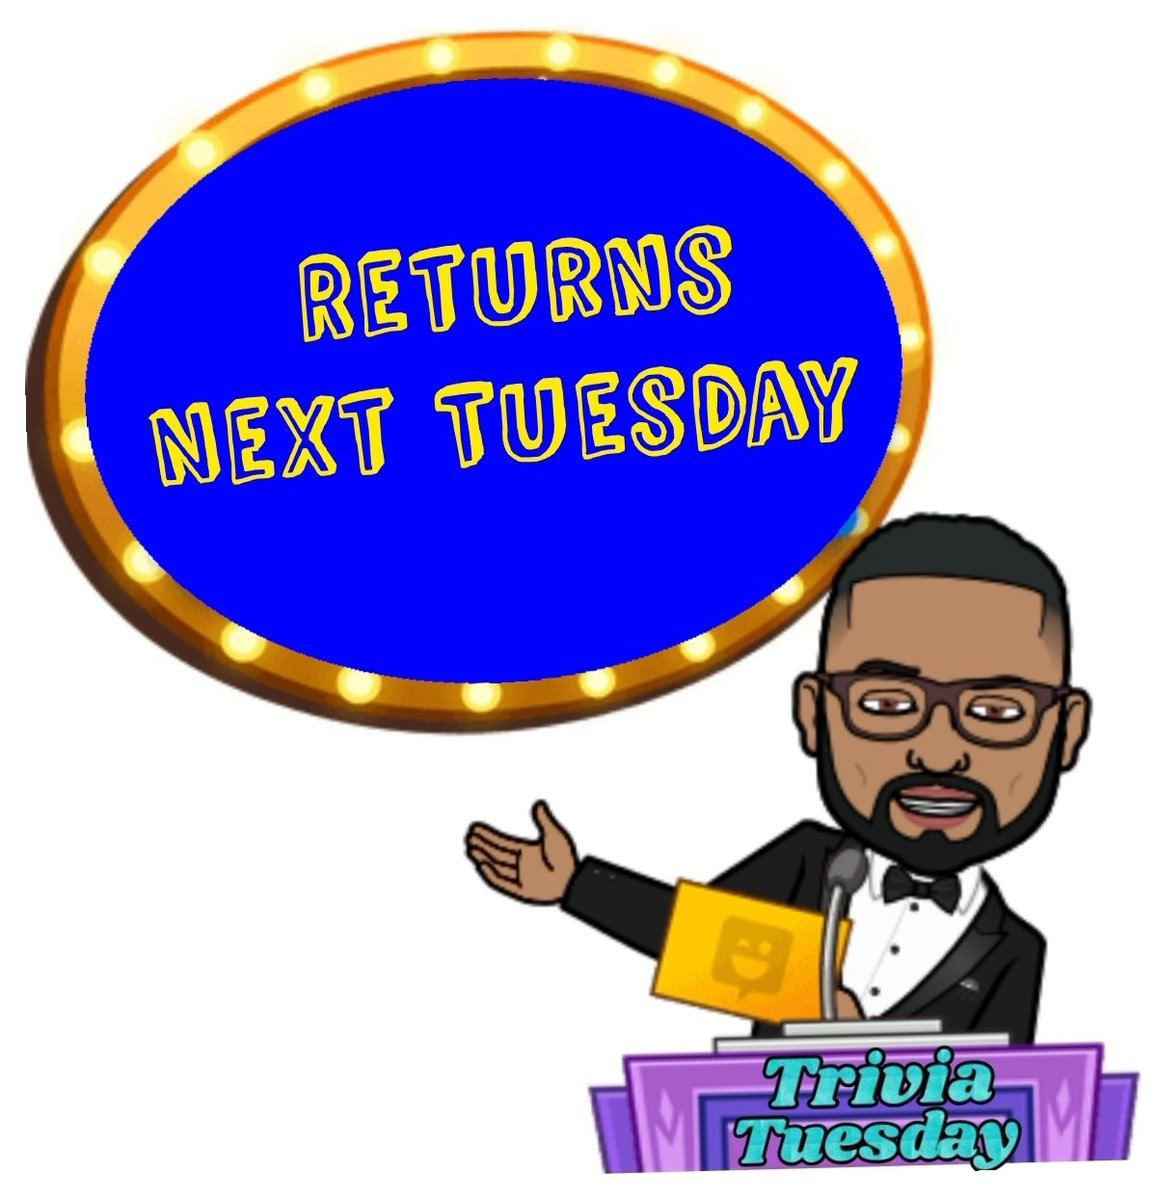 Y'all stay out of my DMs we didn't get the 100 retweets, so #TriviaTuesday will be back next week! #grambling_rys20pic.twitter.com/MmCZgpojHa